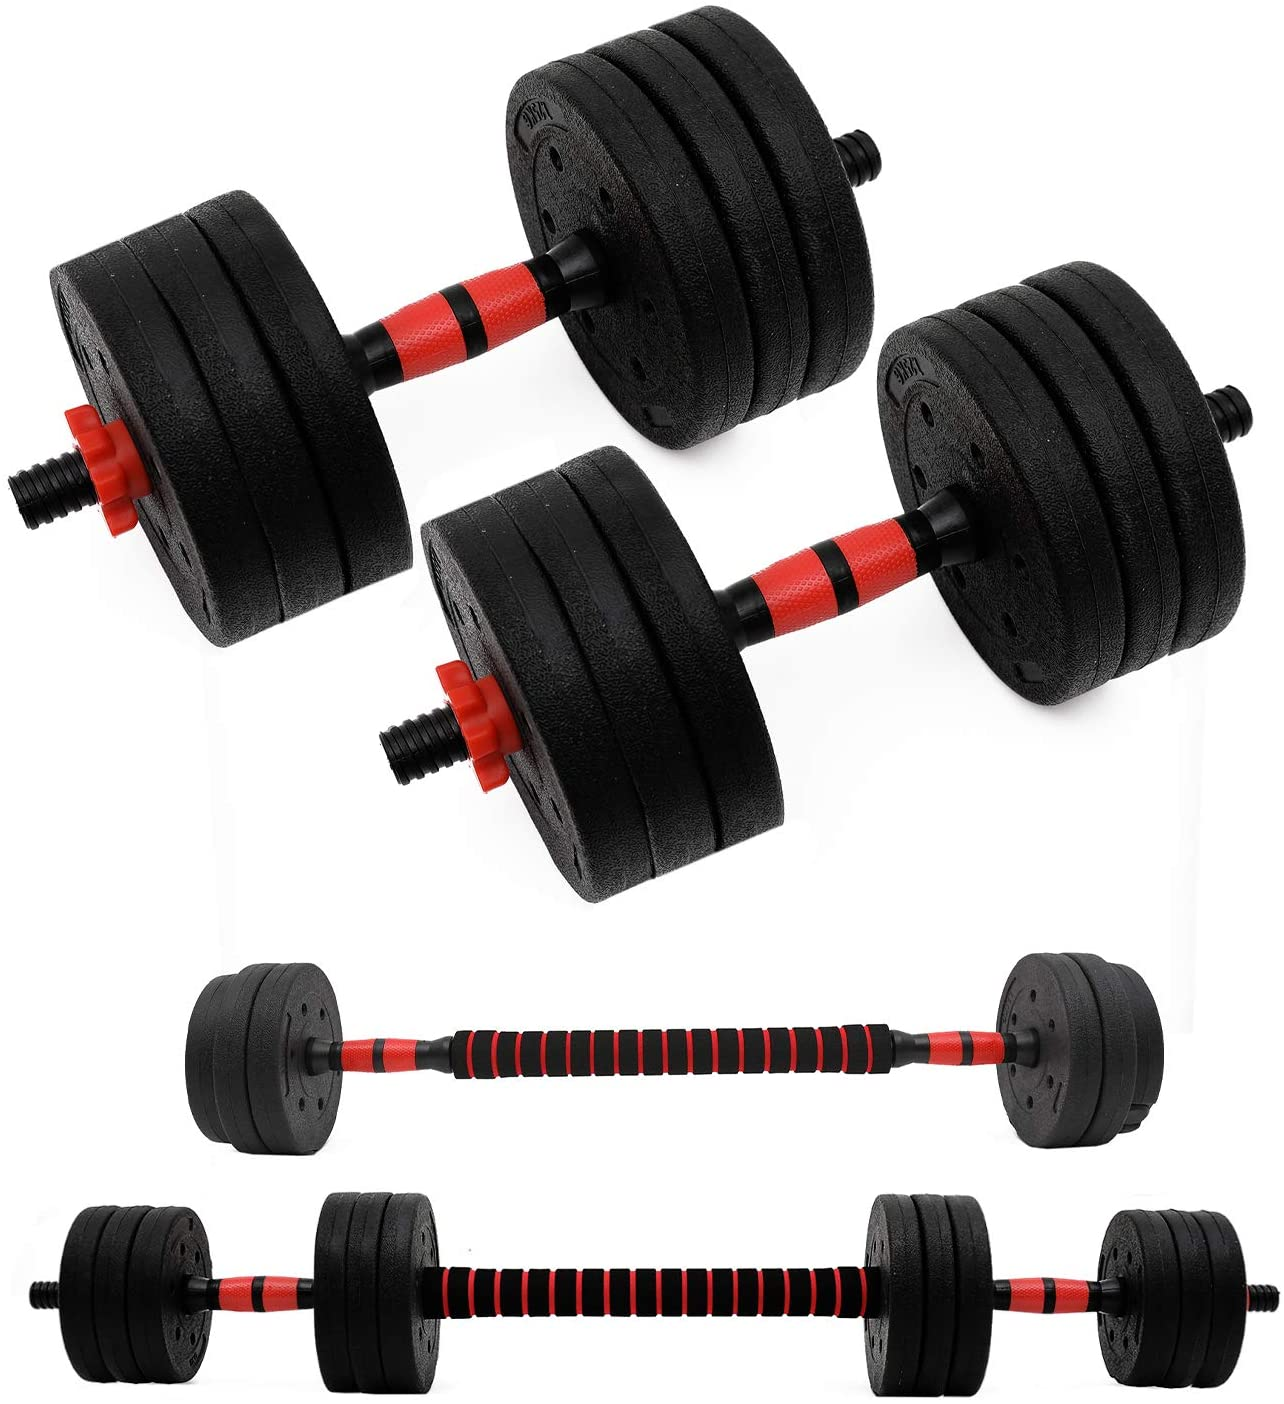 U/N Adjustable Fitness Dumbbells Set, 2 in 1 Dumbbell Pair Set with Connecting Rod Used As Barbell for Gym Work Out,Home Fitness Equipment for Men and Women 2 Pieces/Set